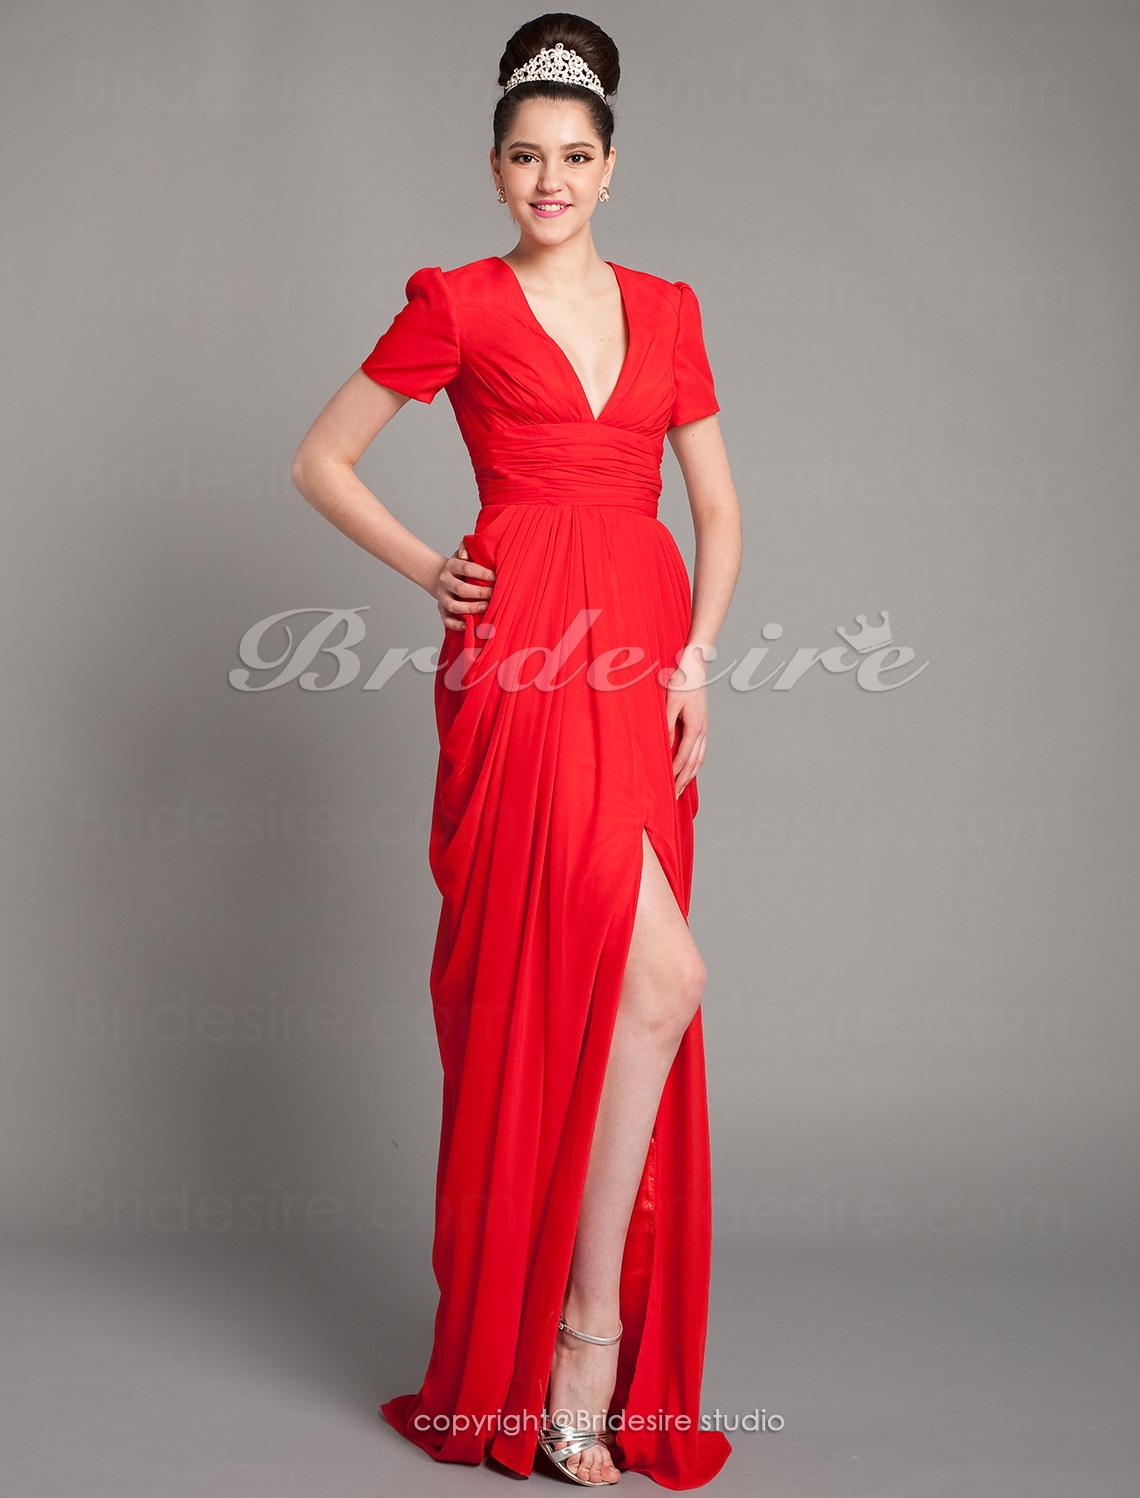 Sheath/ Column Chiffon Floor-length V-neck Evening Dress inspired by Katharine Mcphee